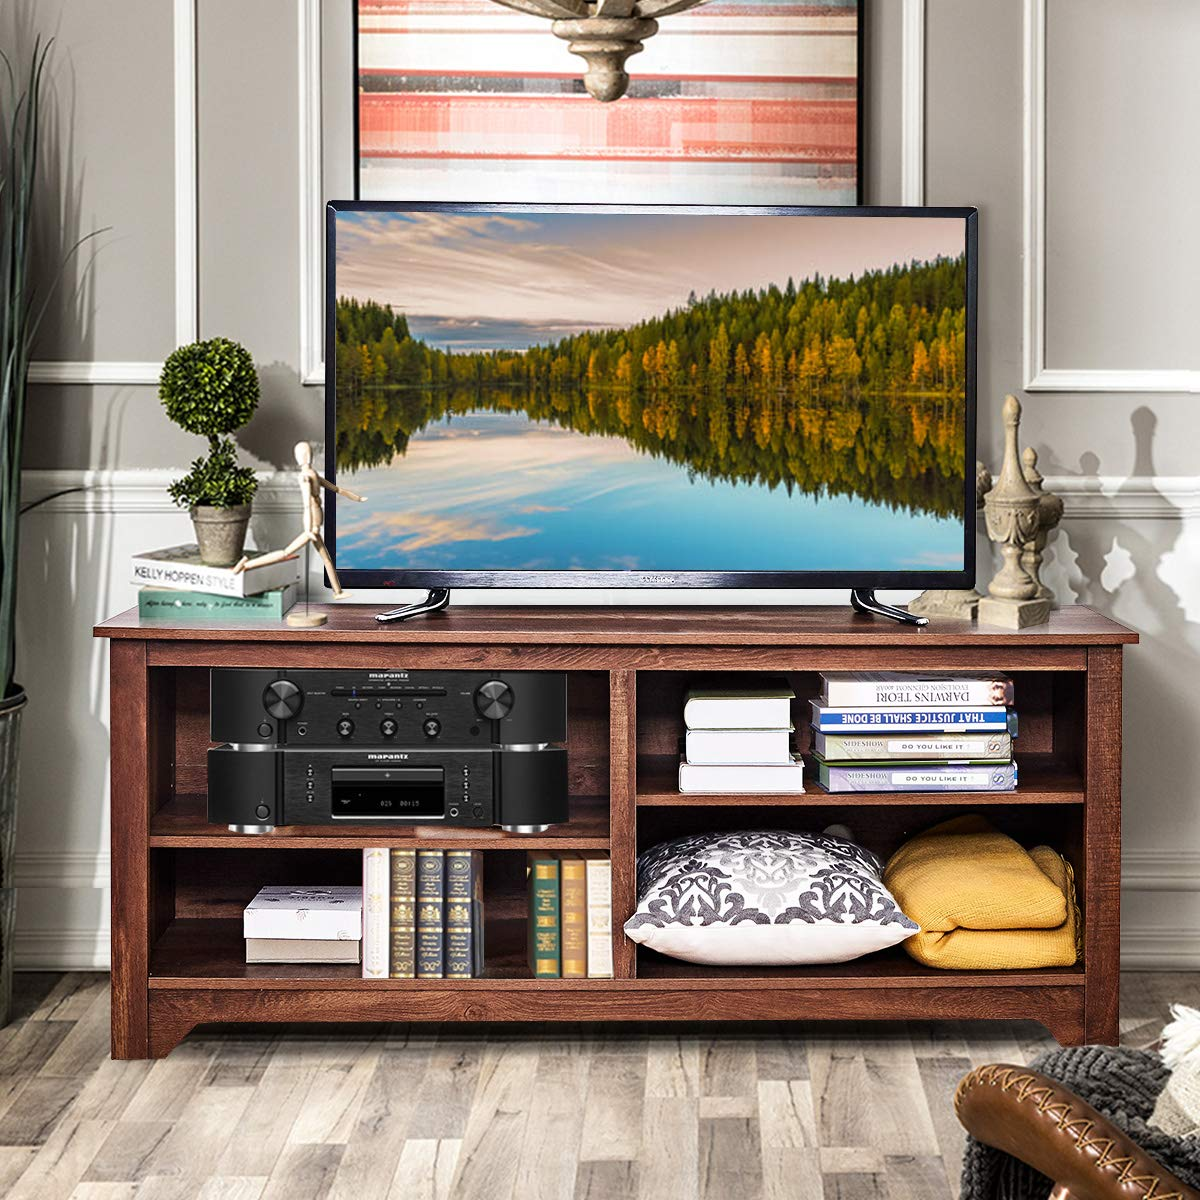 Tangkula tv stand classic design wood storage media console entertainment center for tv up to 60 home living room furniture with 4 open storage shelves